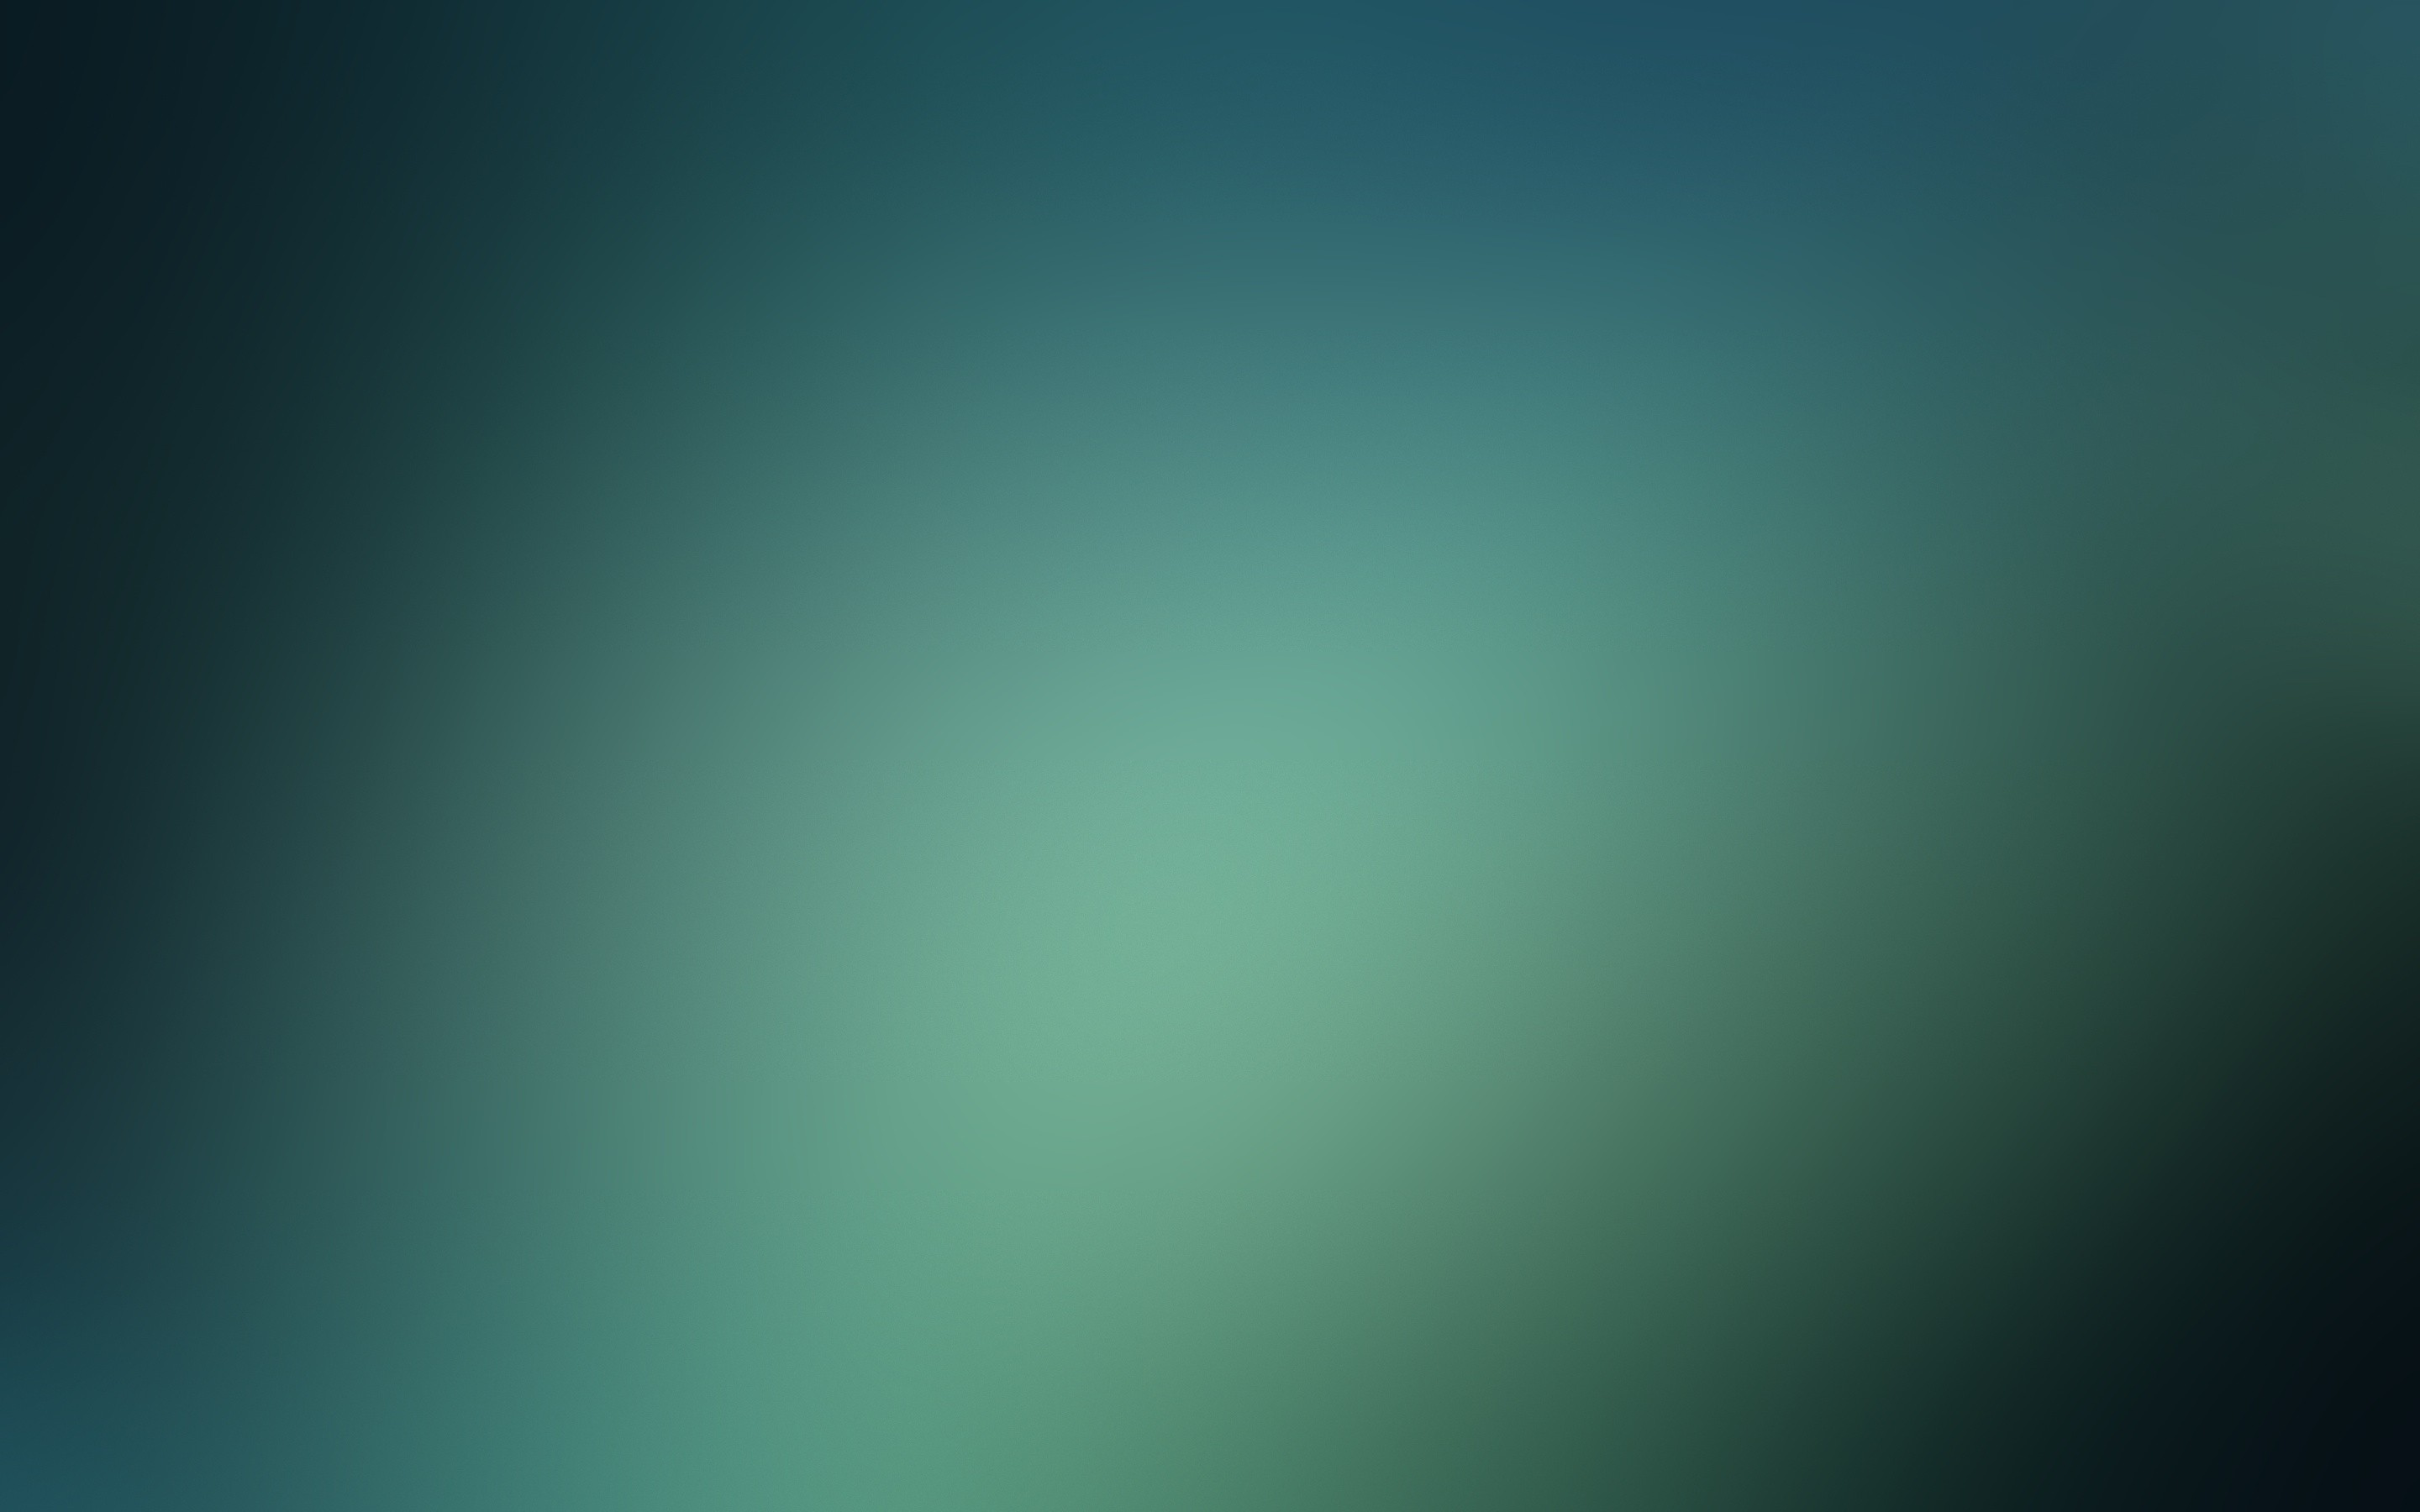 Simple Wallpapers 27240 2880x1800 Px